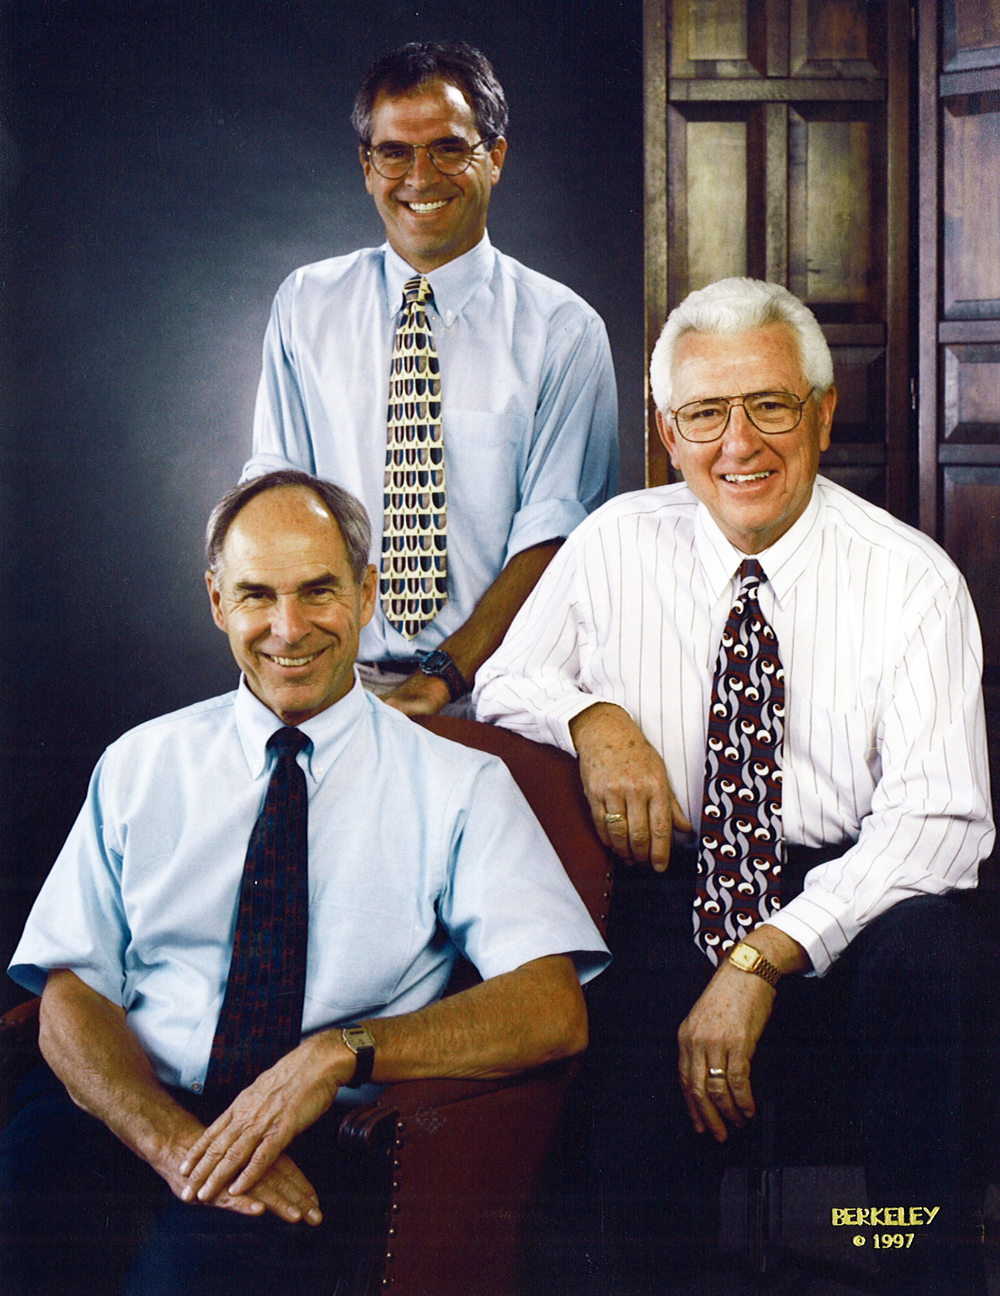 Hyder's founders, Neil McLagan, Tom McLagan, Ray Lobato (from left to right), 1997